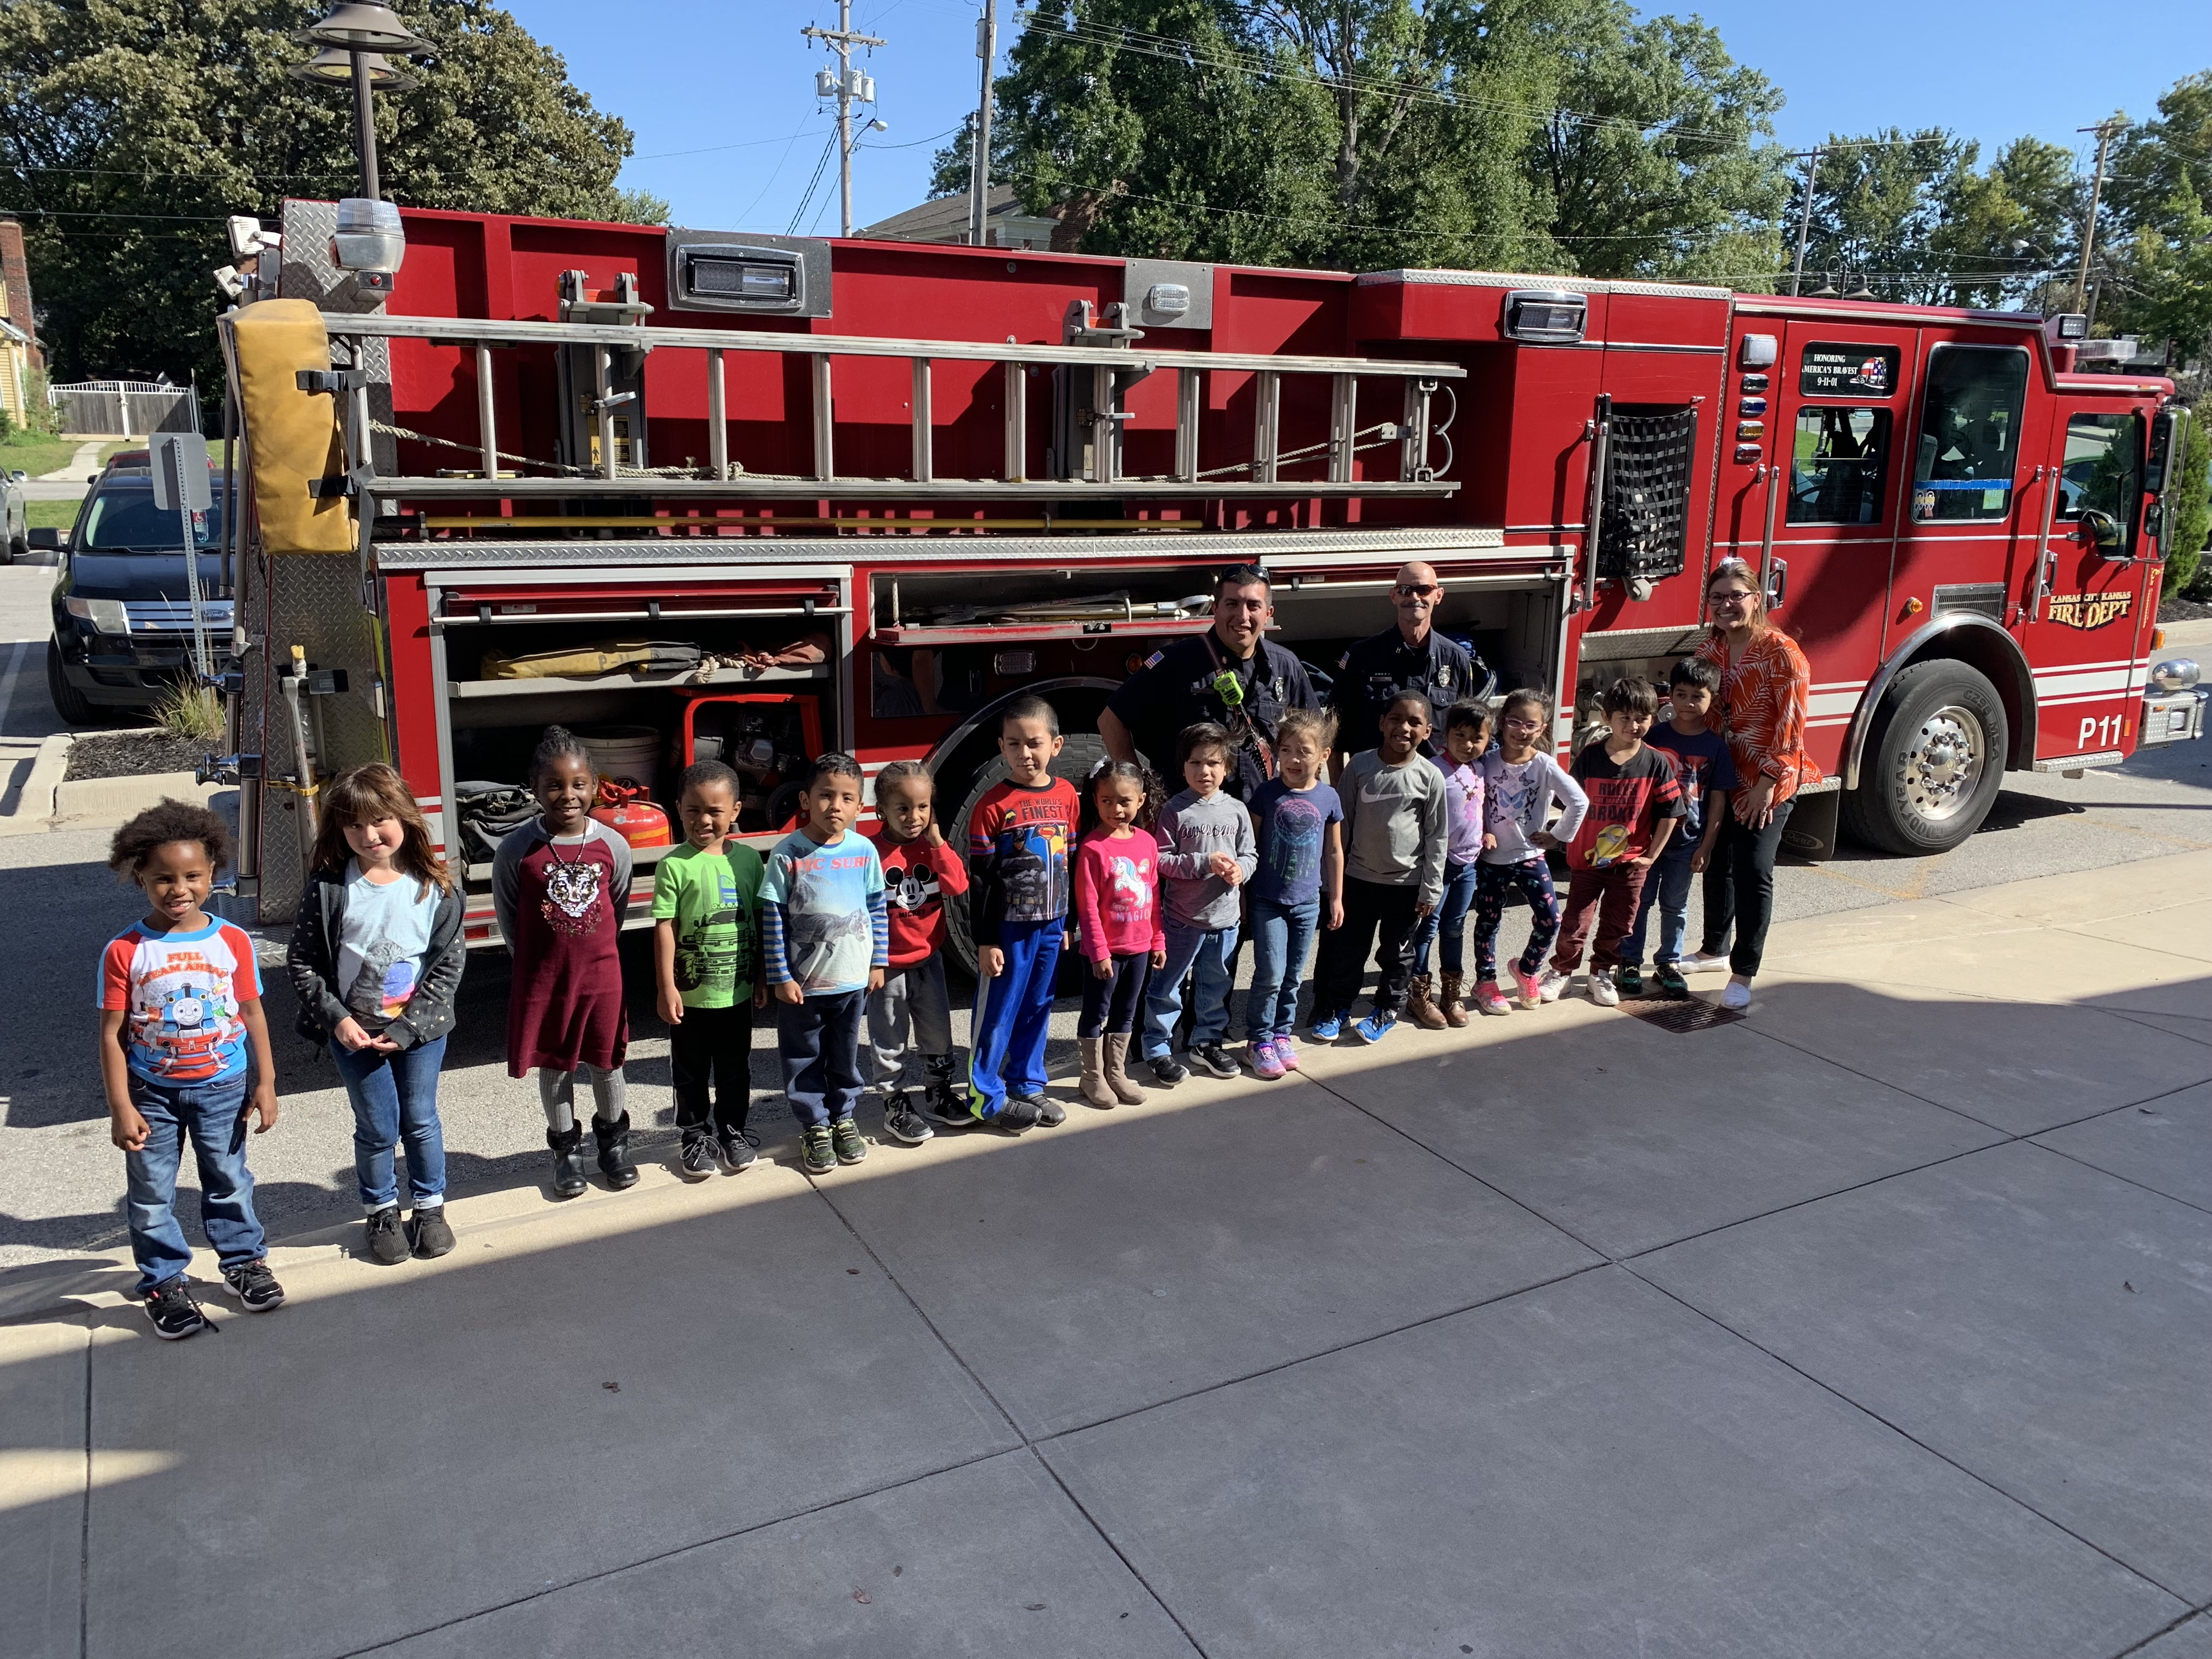 Ms. Merlos's kindergarten class poses in front of fire engine with two KCK firefighters.